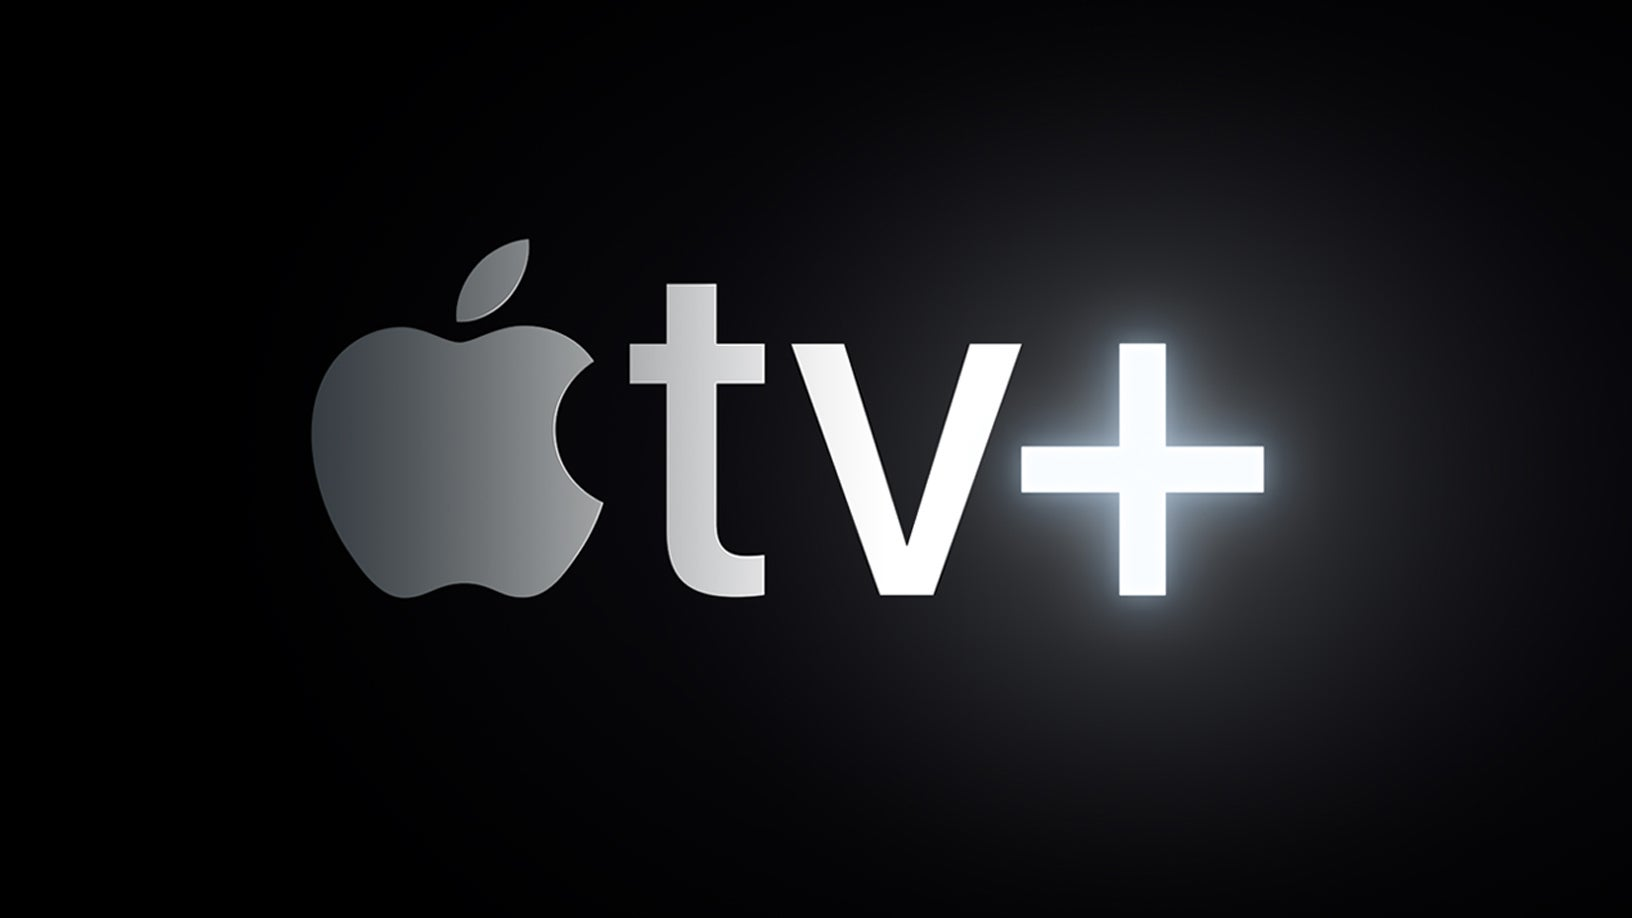 Apple TV+ logo.